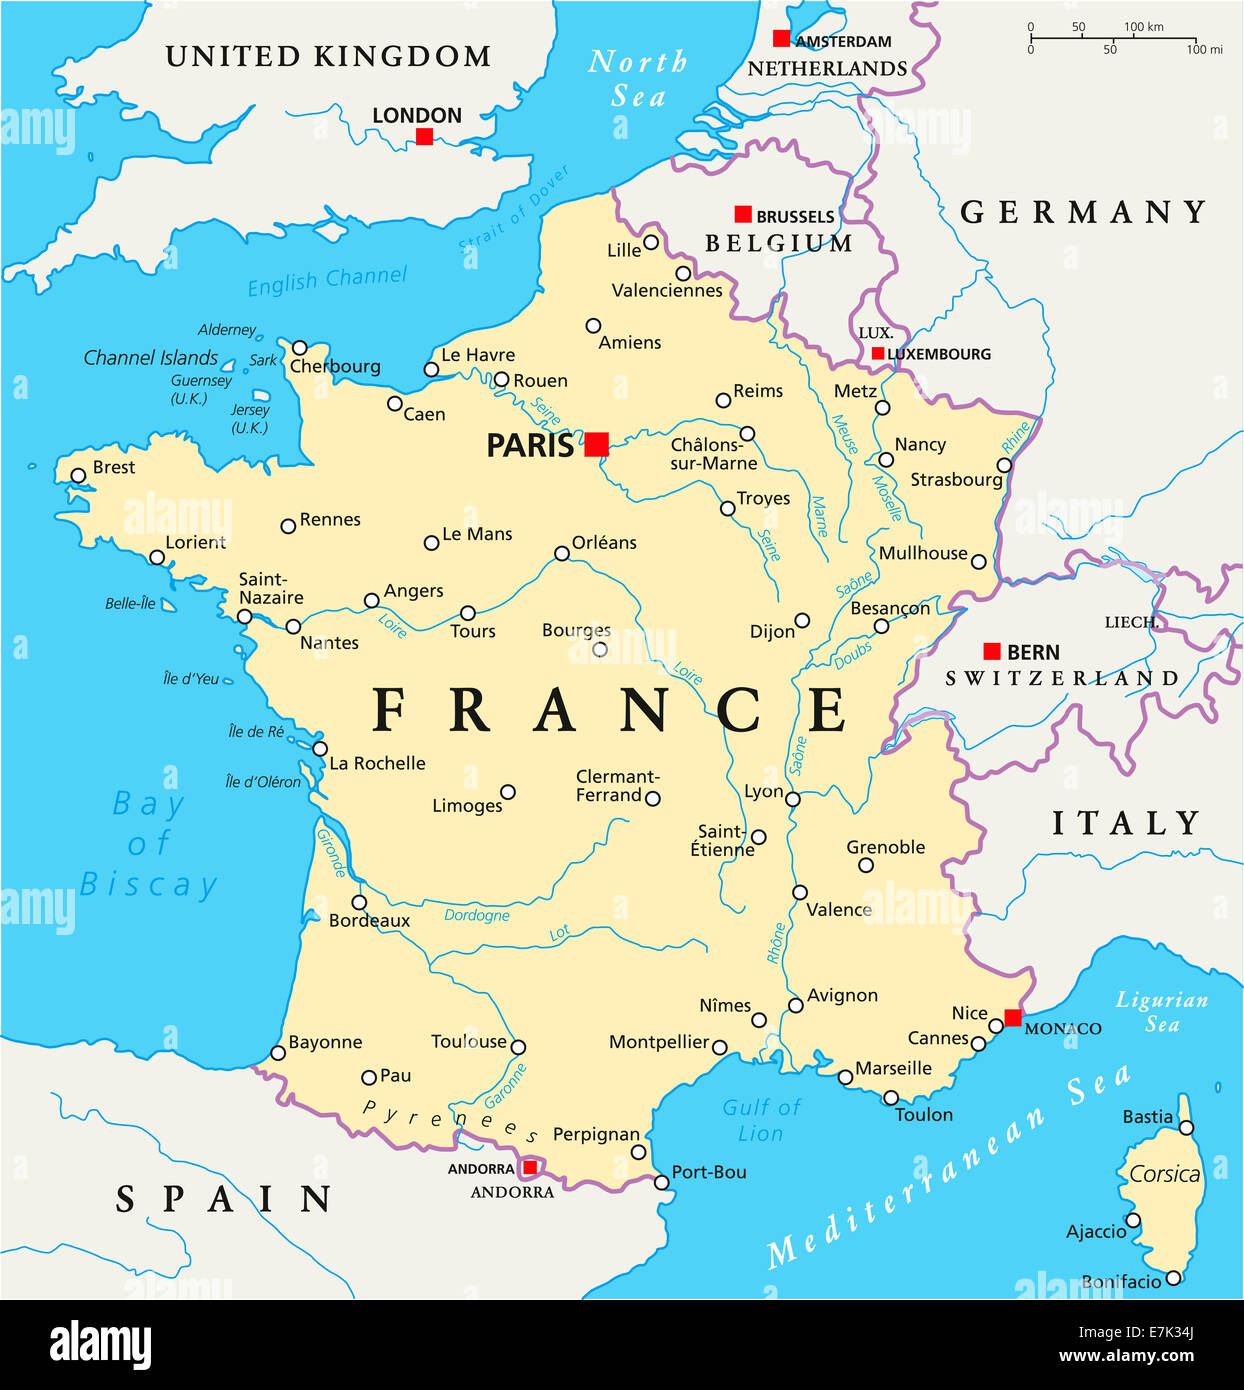 Map Of France And Europe.France Map Stock Photos France Map Stock Images Alamy